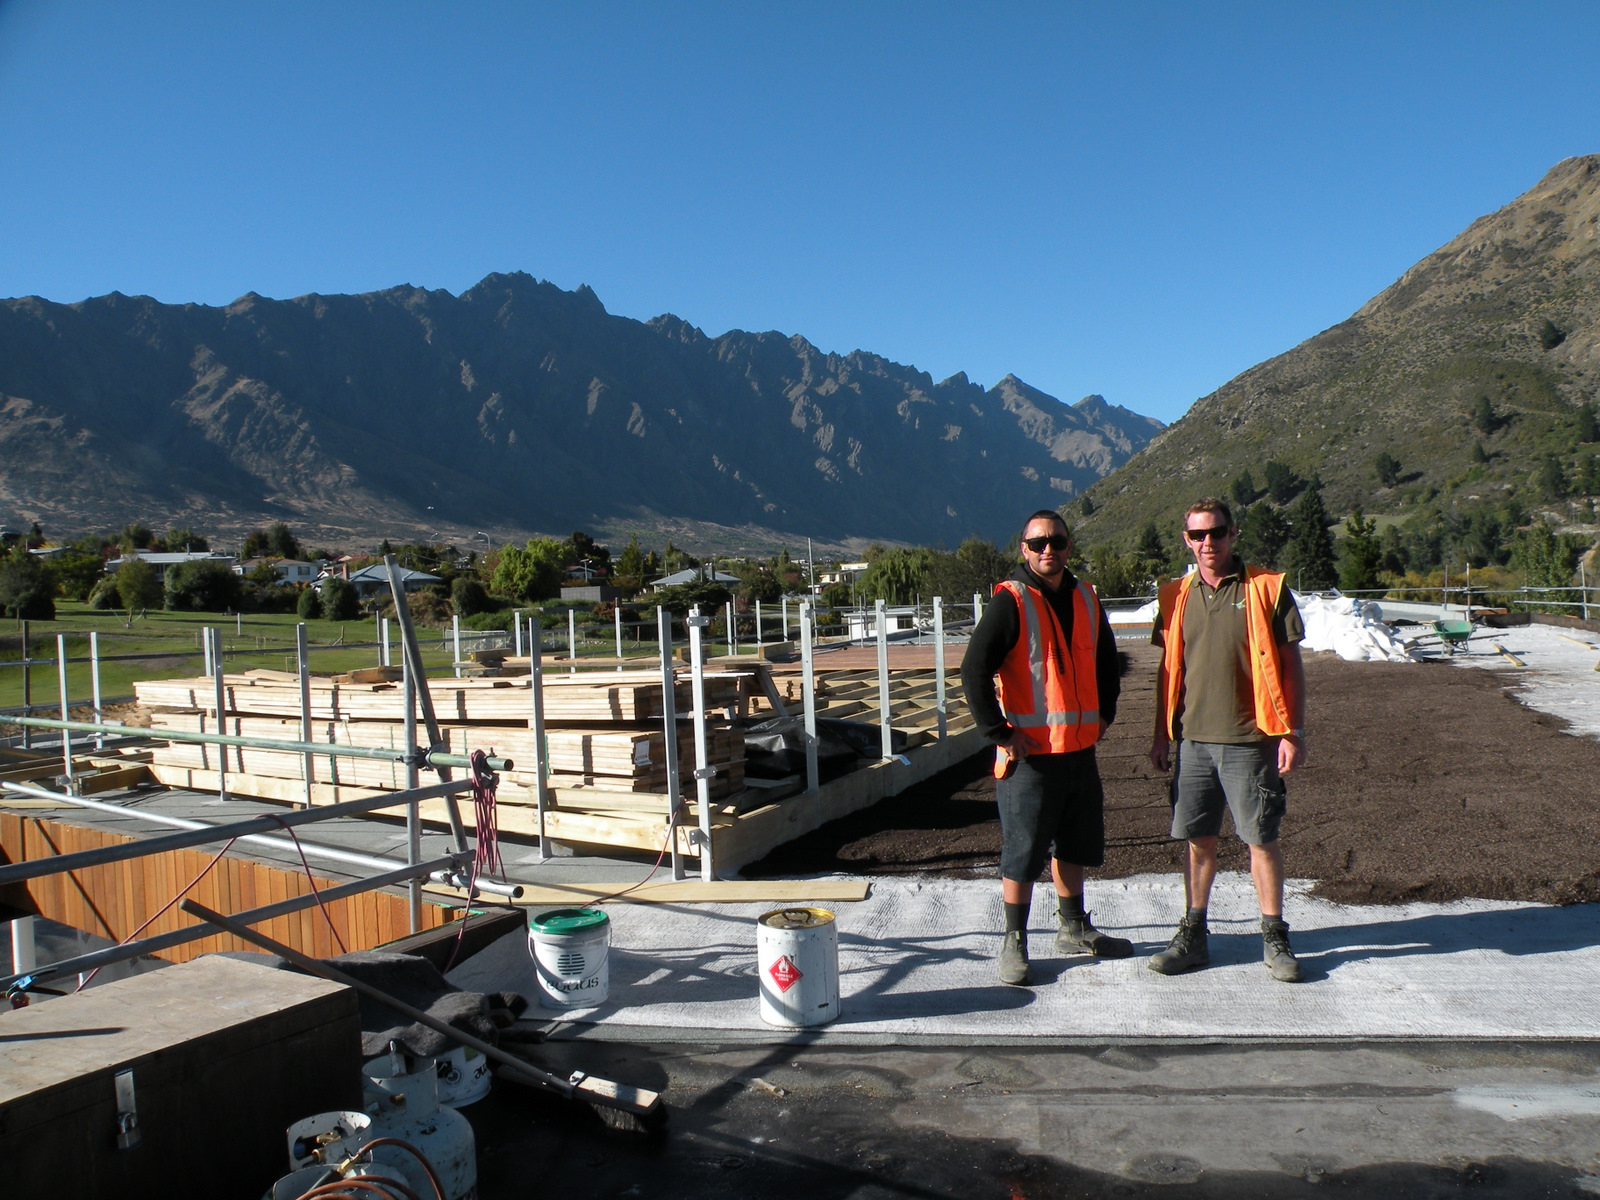 Installing a green roof at the Remarkables